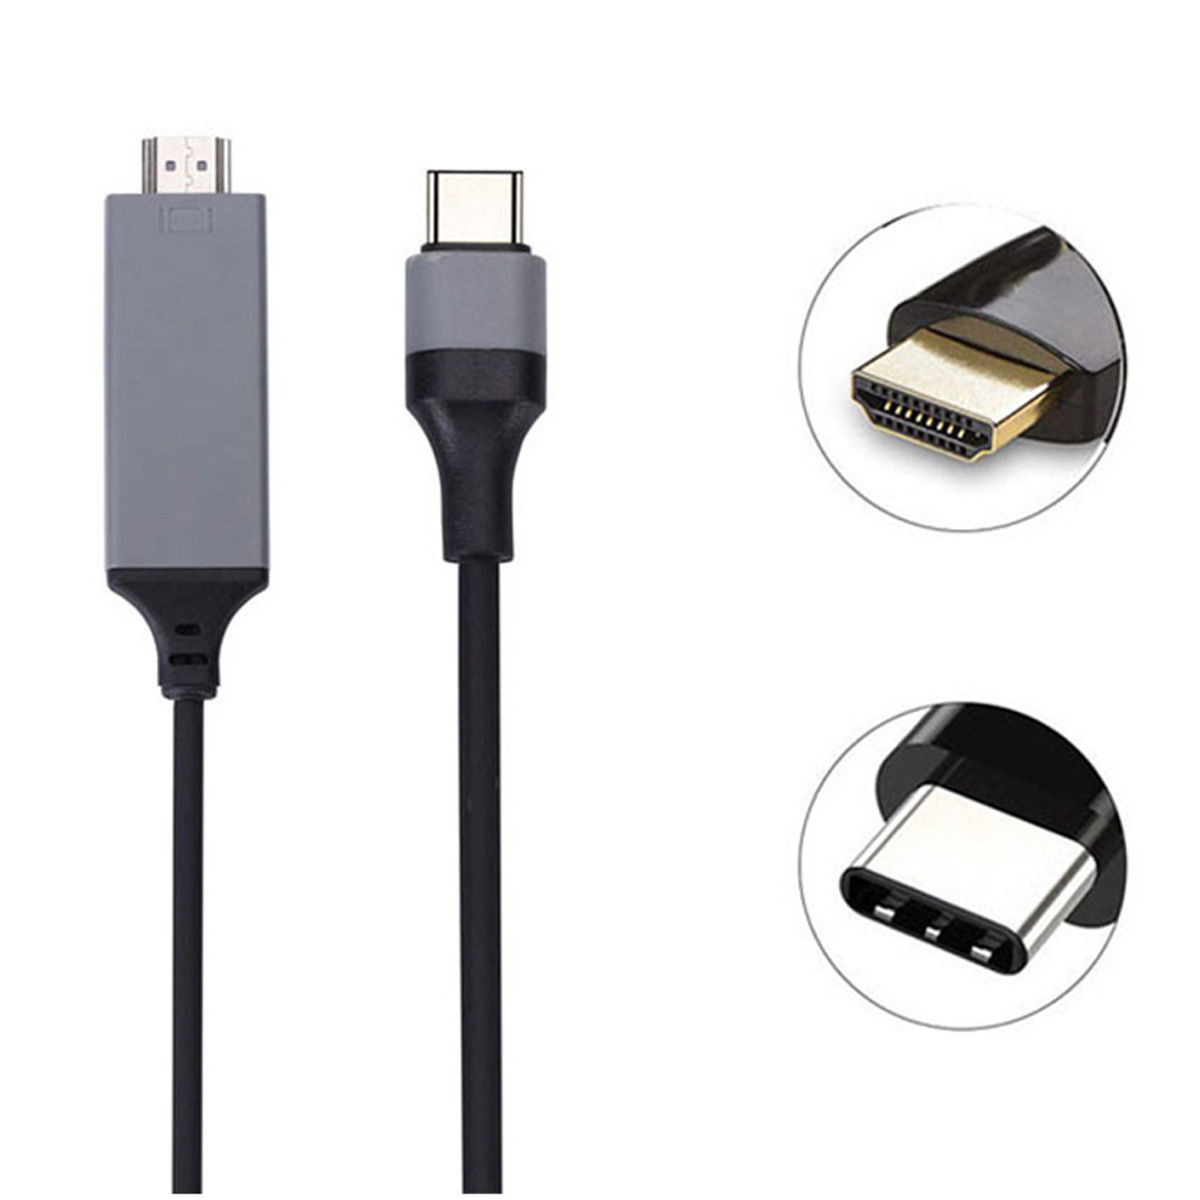 USB Type-C 3.1 to HDMI Cable 4K M/M 6ft For MacBook Galaxy S8